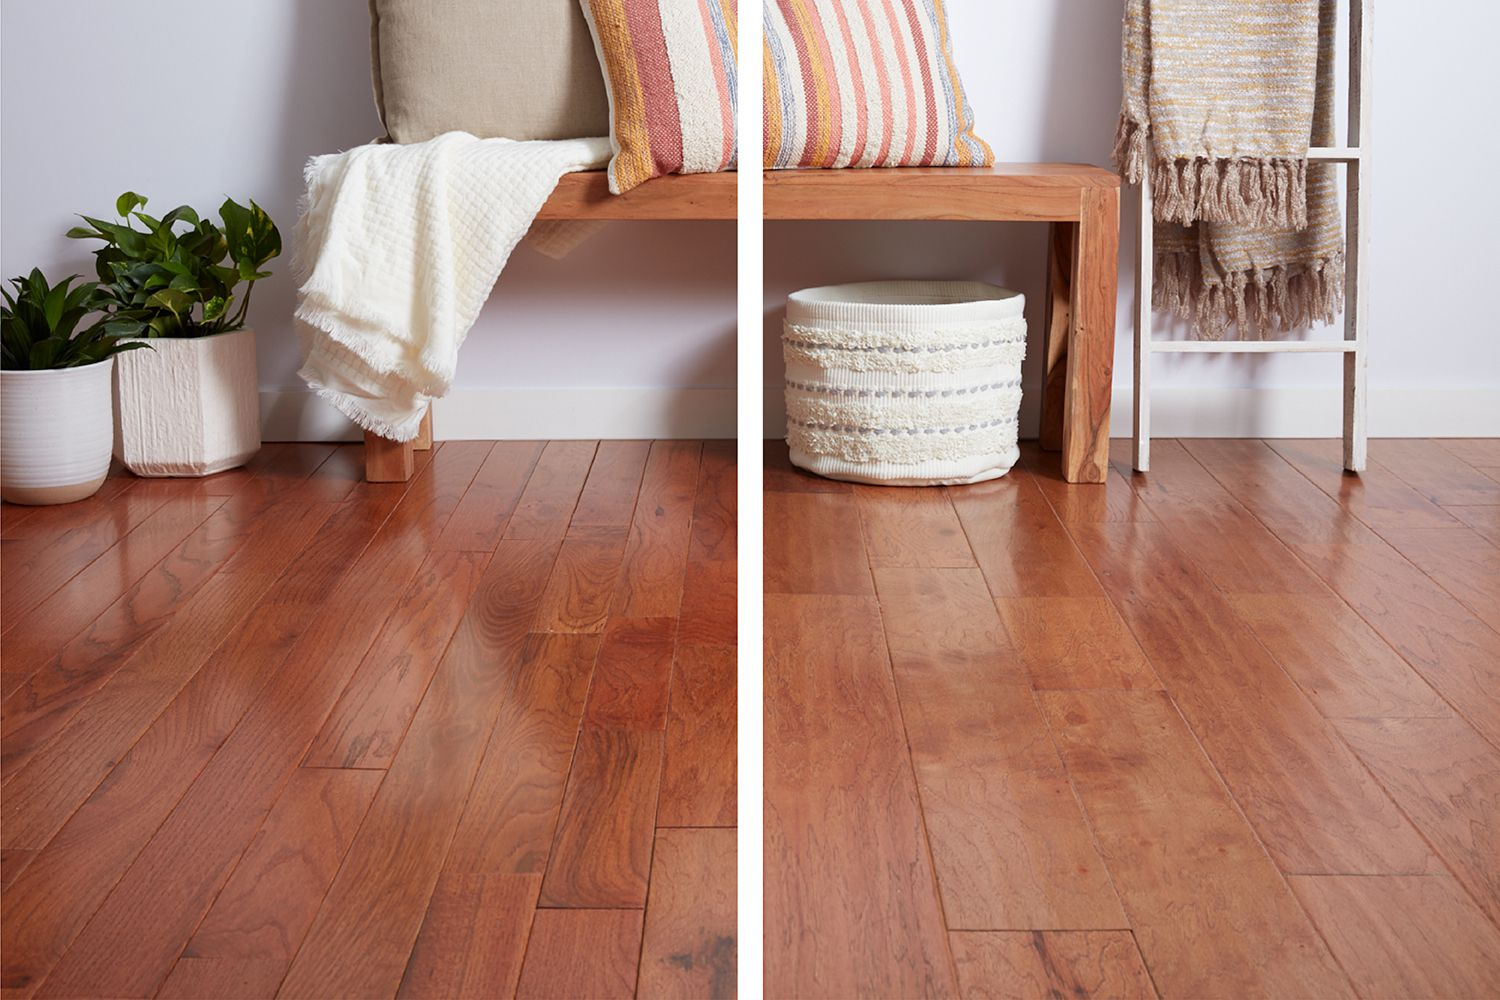 Solid Wood vs. Engineered Wood Flooring: What's the Difference?